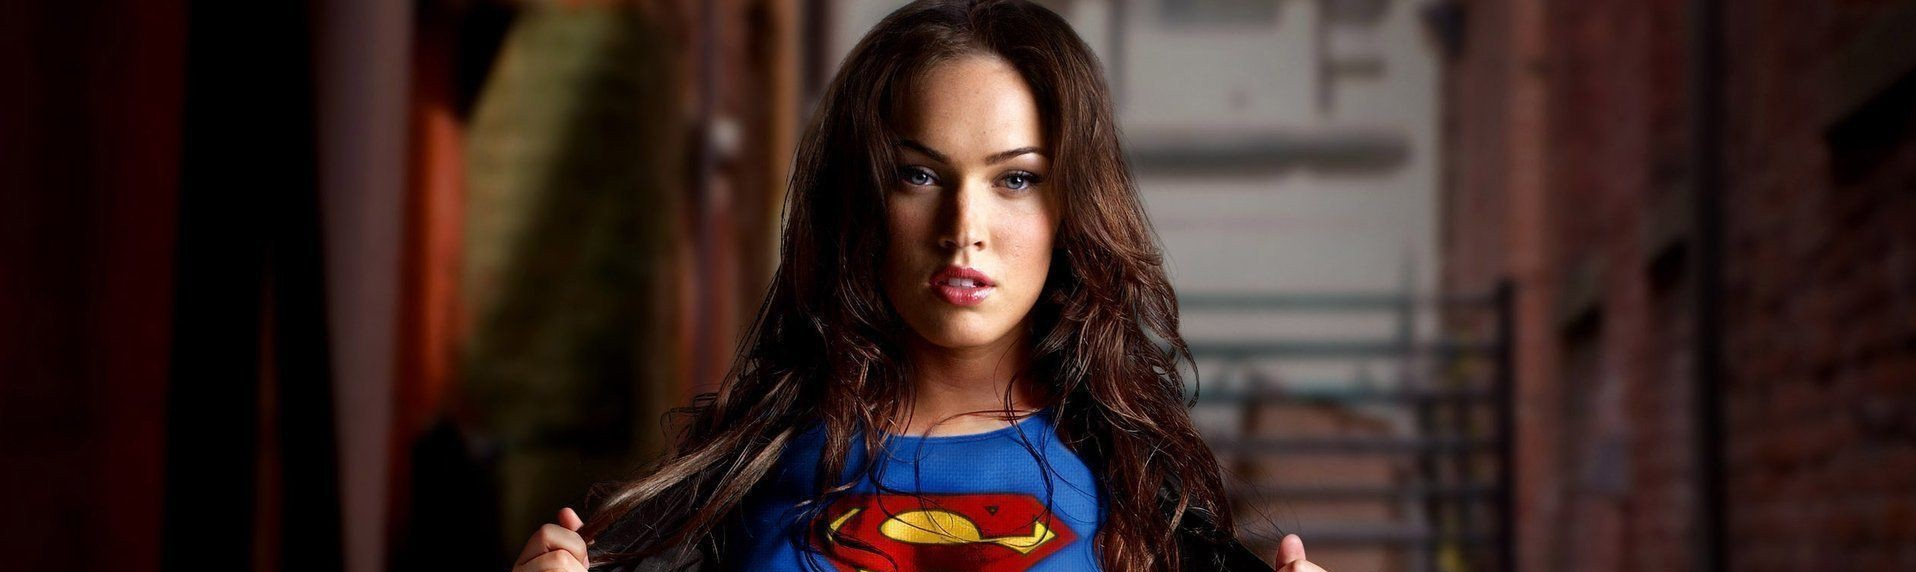 Megan Fox Megan Fox hot sexy superman costume hd wallpapers – World HD Wallpapers